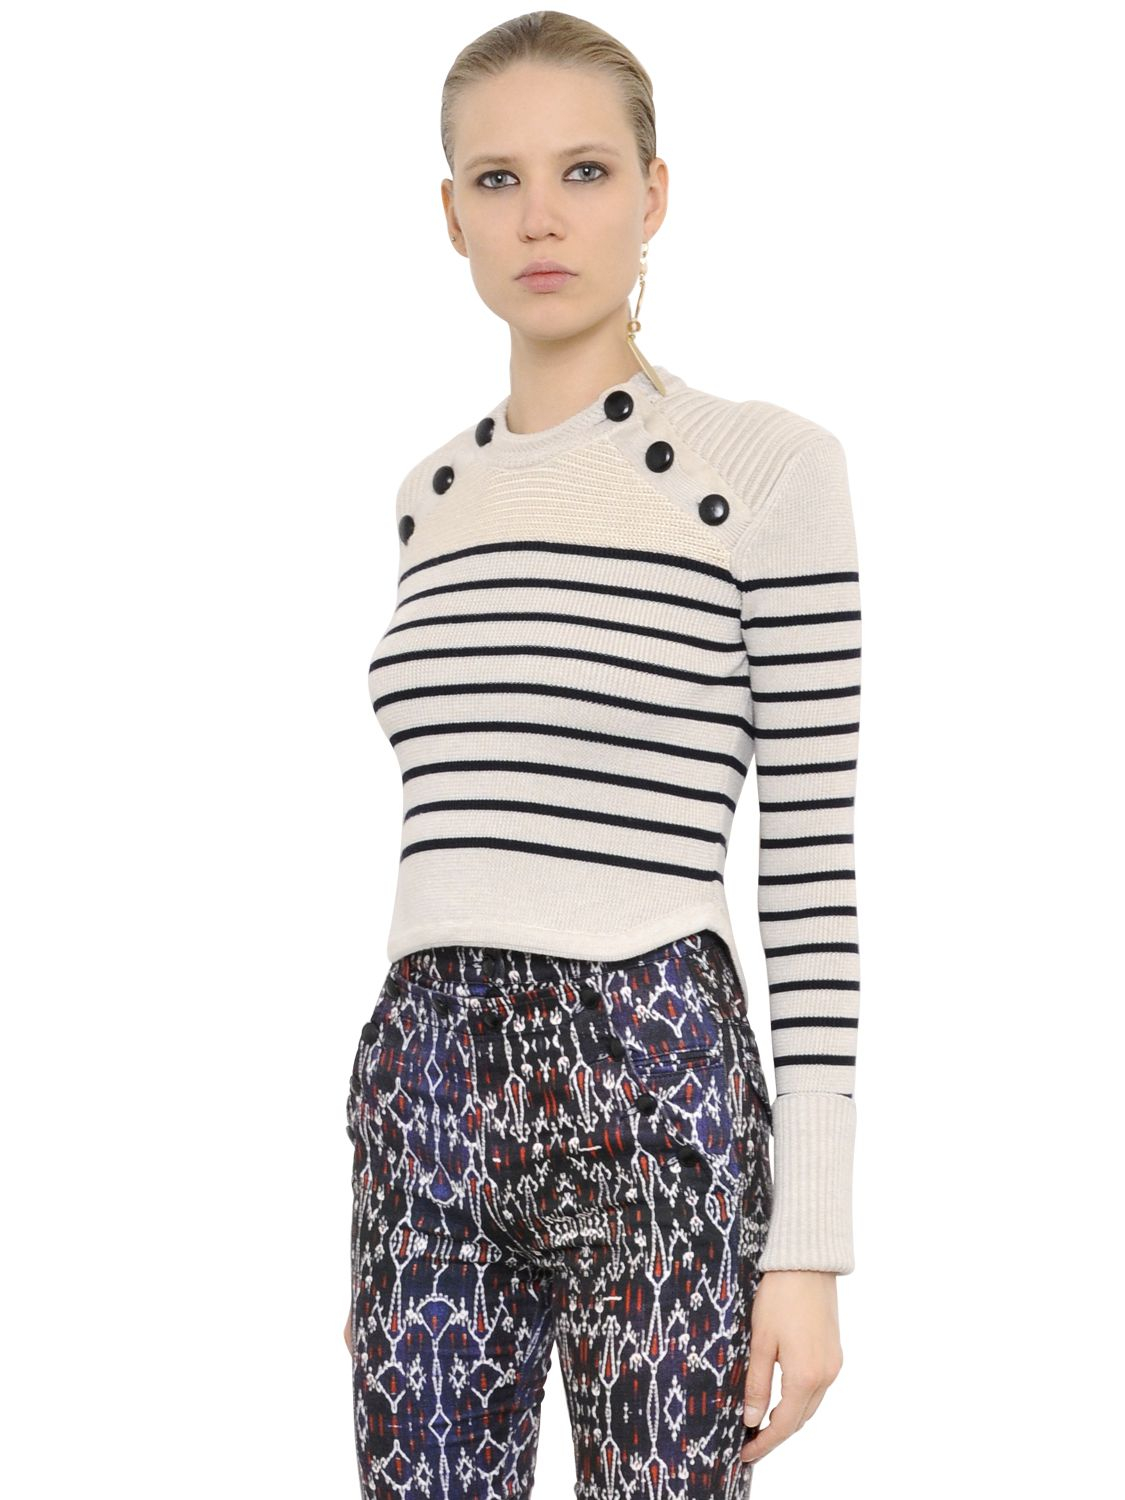 Isabel marant Cropped Striped Wool Rib Knit Sweater in Natural | Lyst